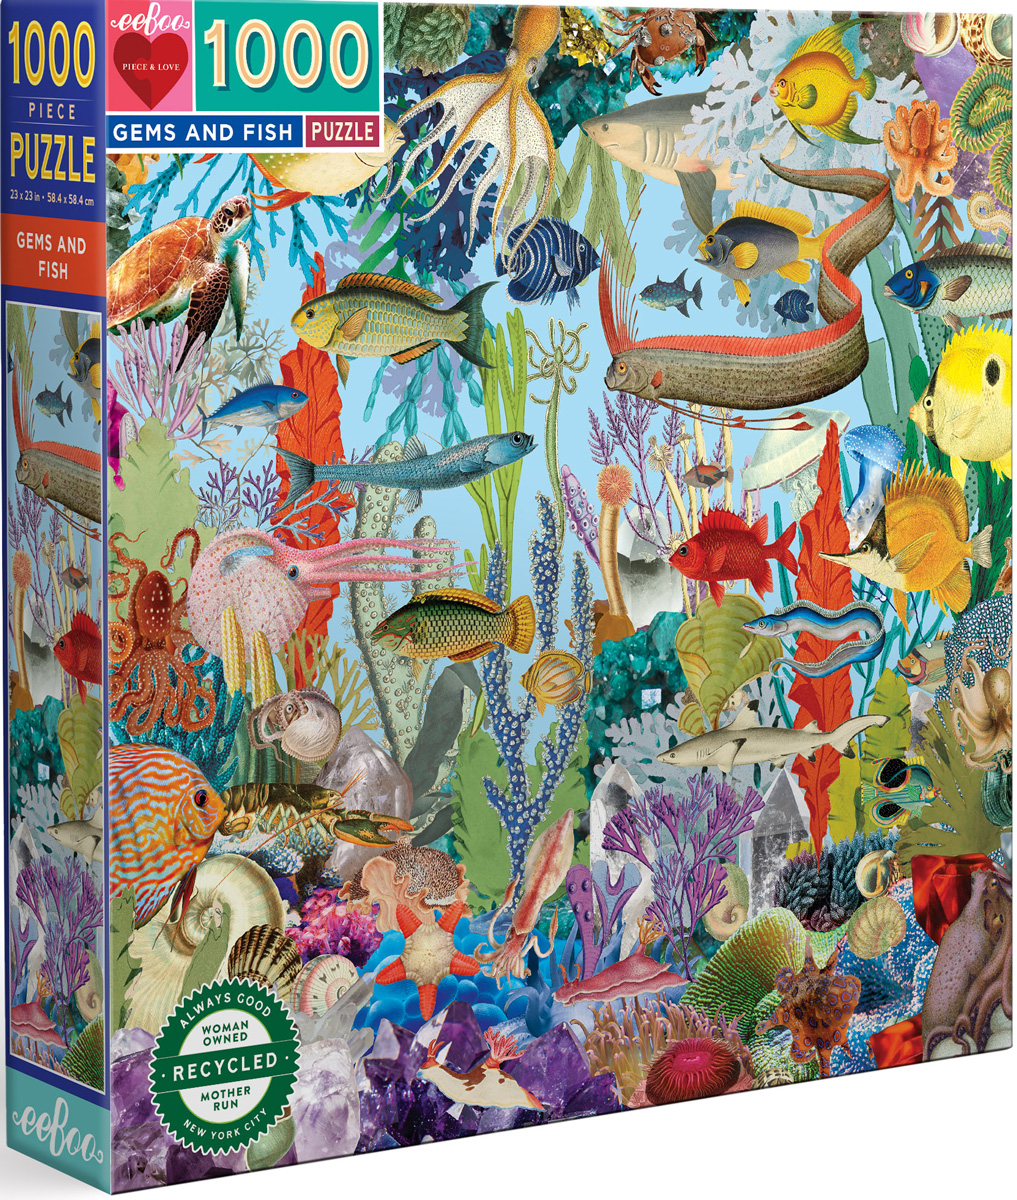 Gems and Fish Under The Sea Jigsaw Puzzle